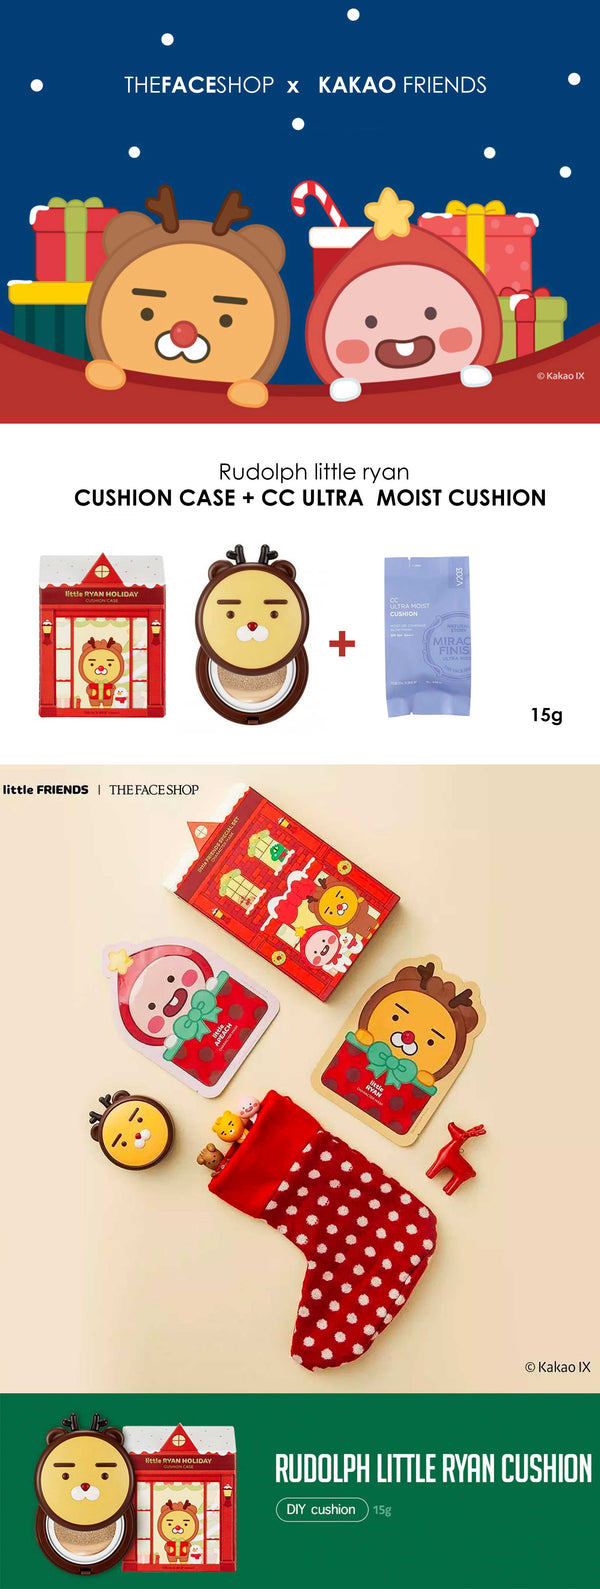 [THE FACE SHOP X KAKAO FRIENDS] LITTLE RYAN HOLIDAY CUSHION CASE + CC ULTRA MOIST CUSHION V203